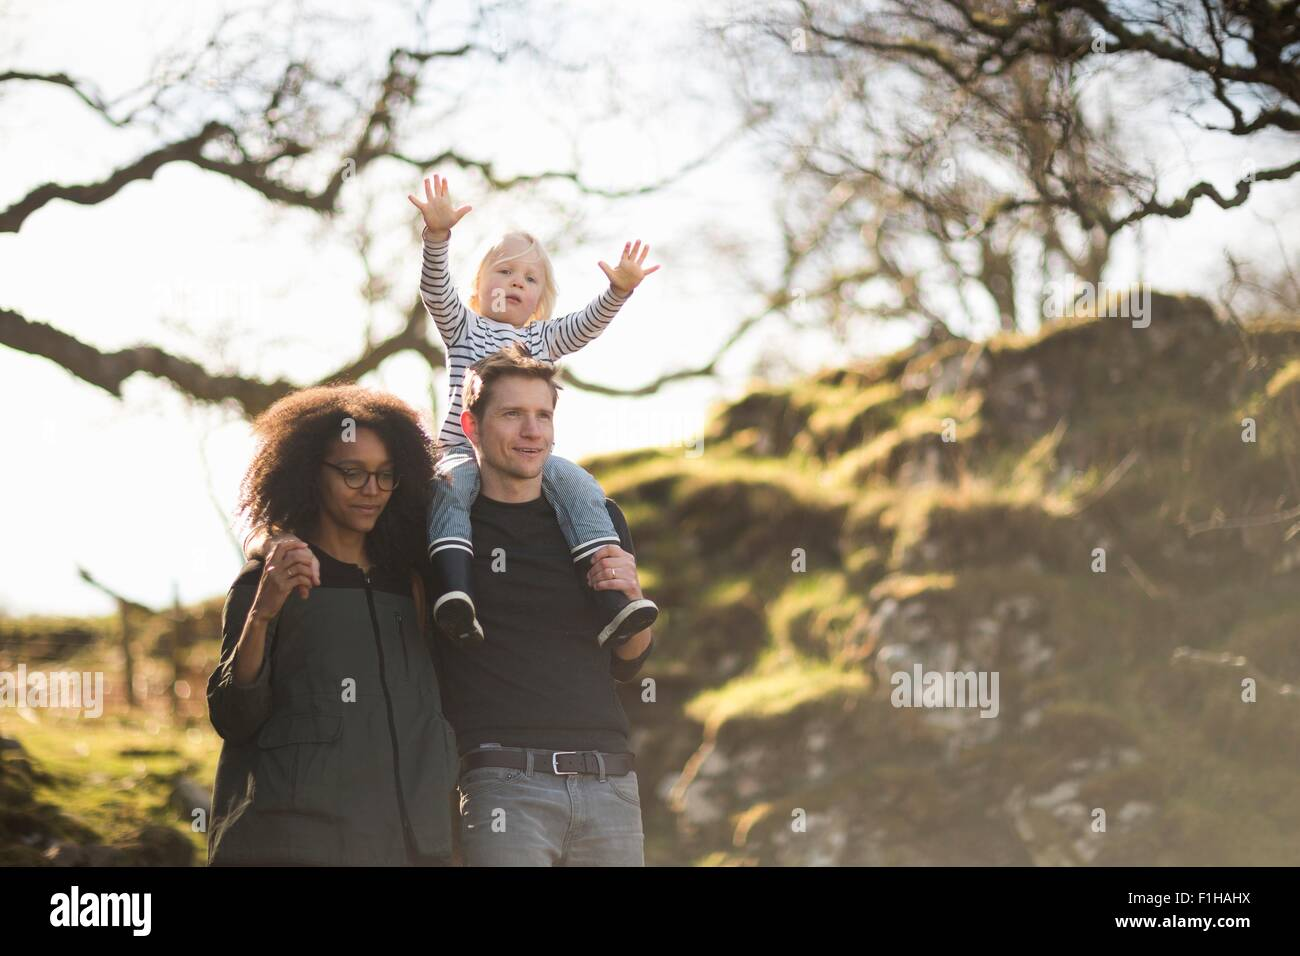 Famille sur marche, father carrying son on shoulders Photo Stock